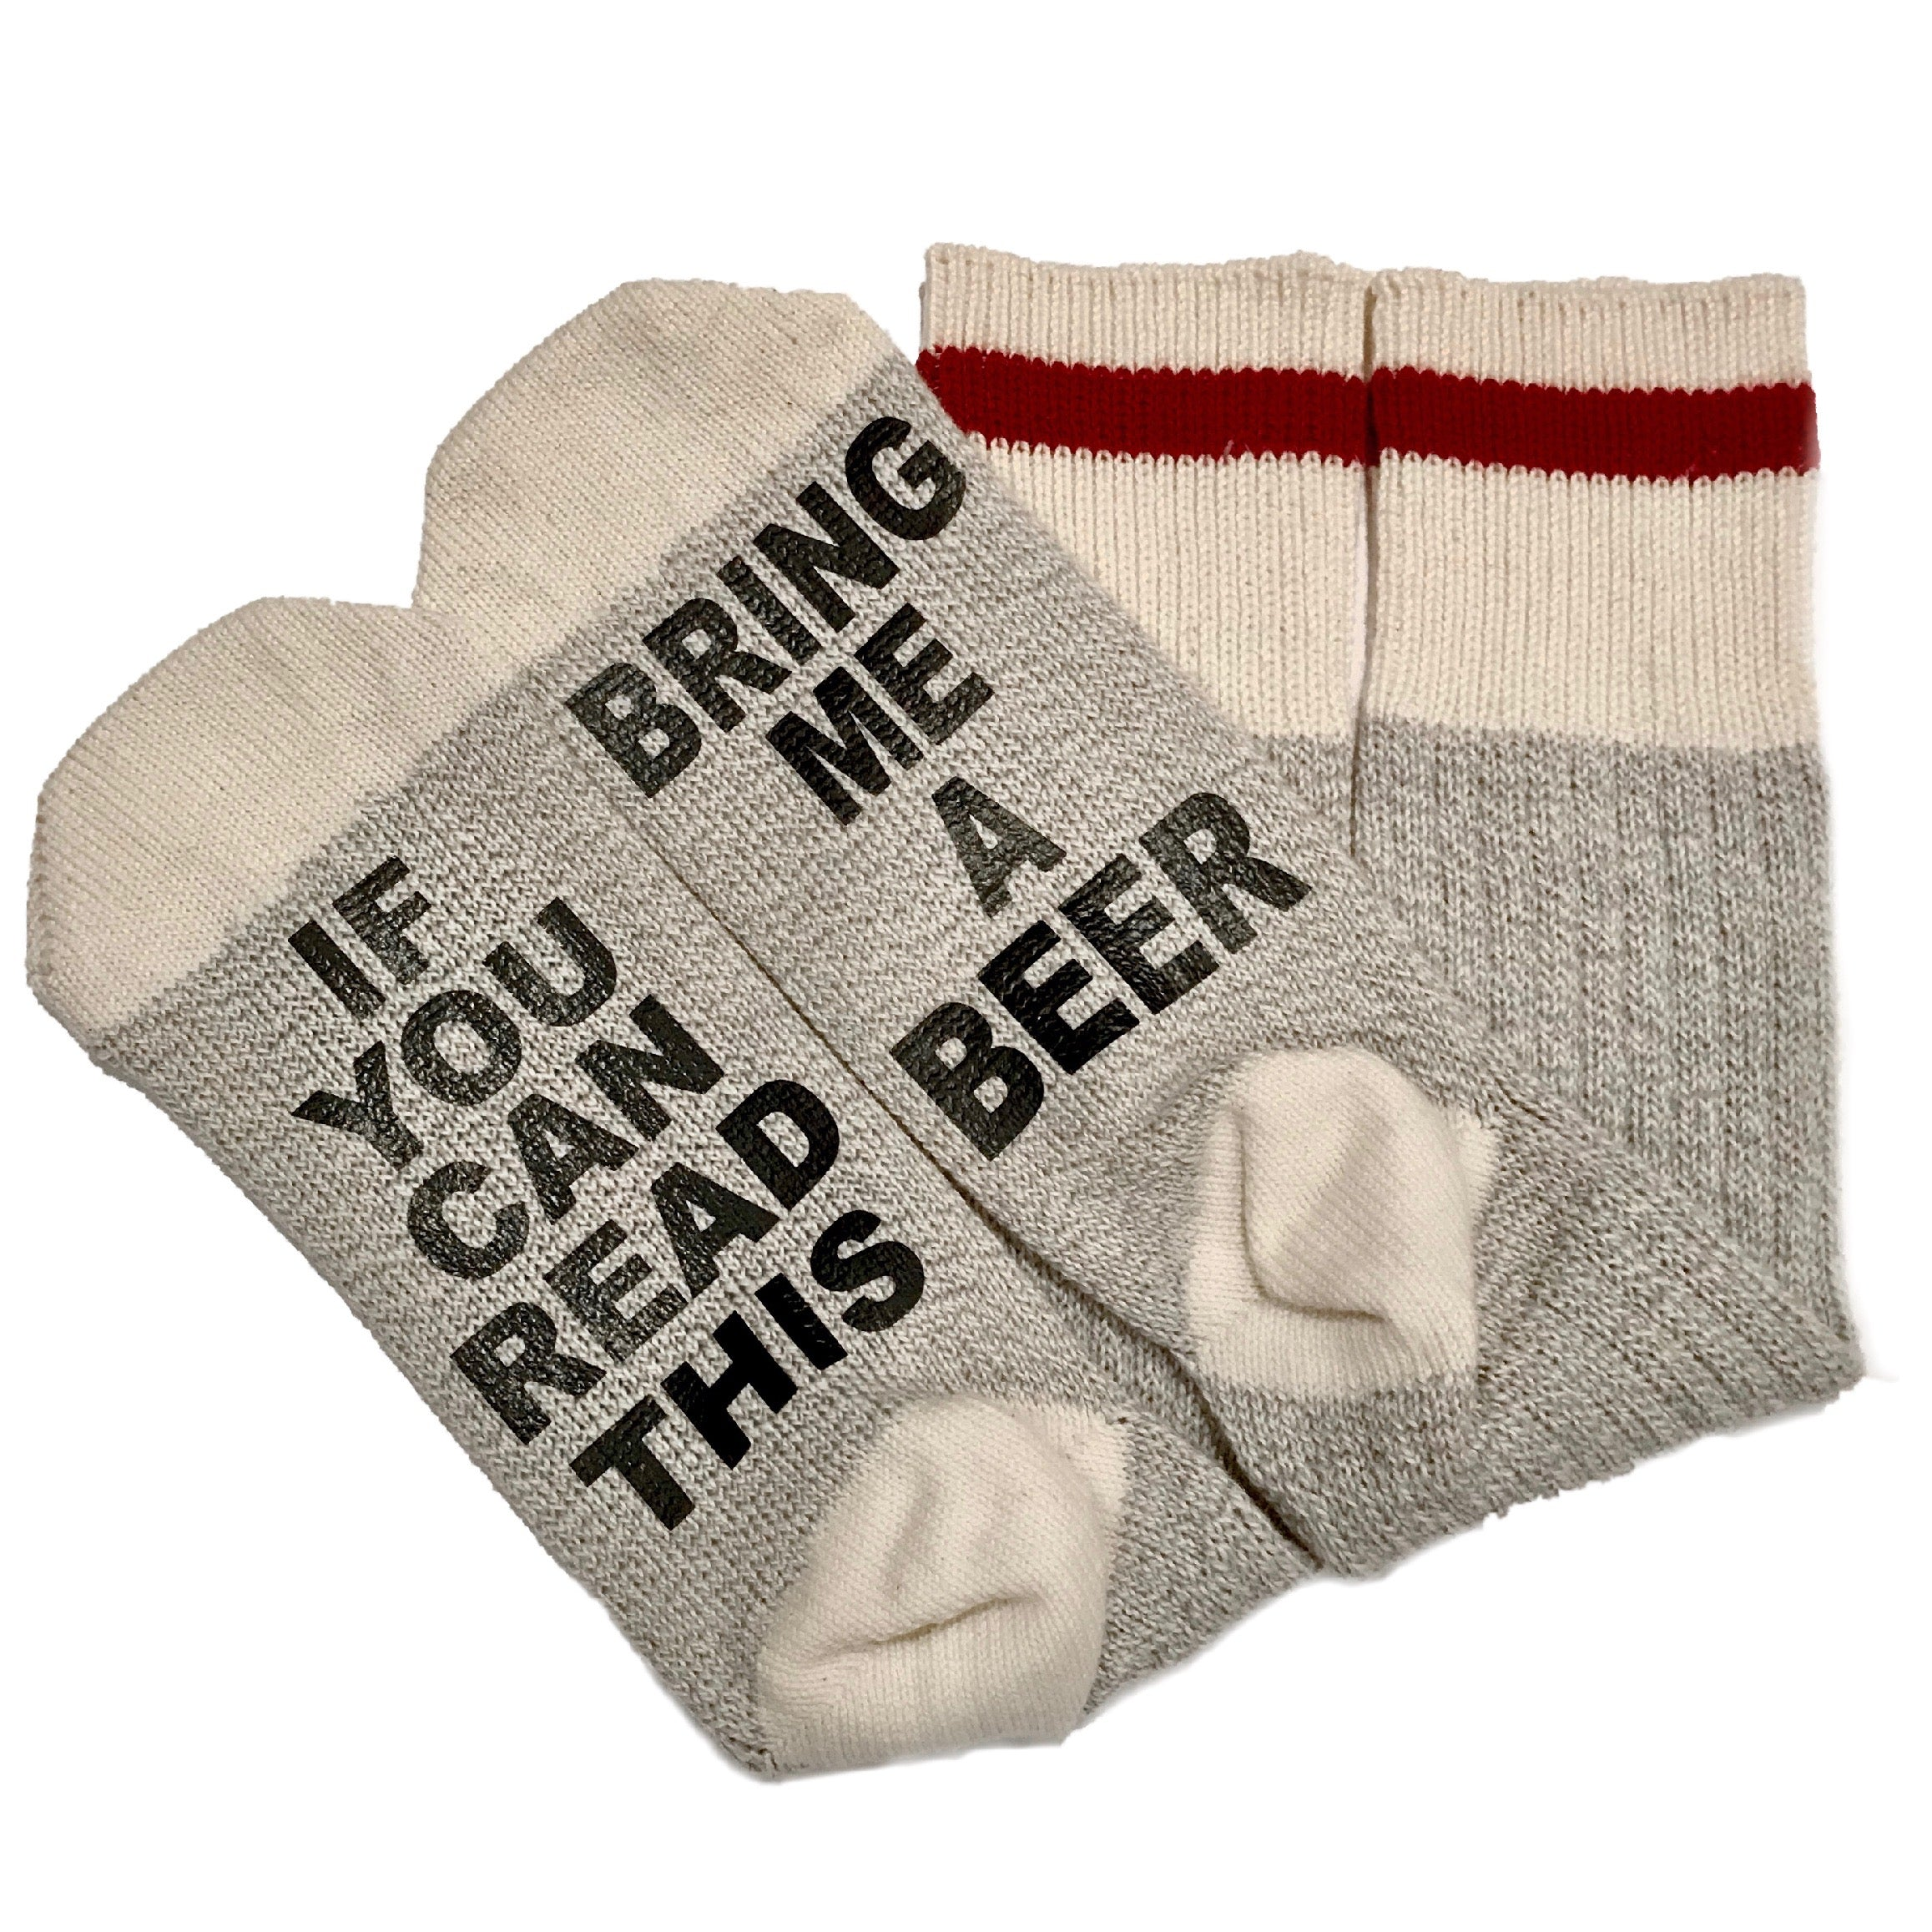 Talking Socks, If You Can Read This Bring Me A Beer